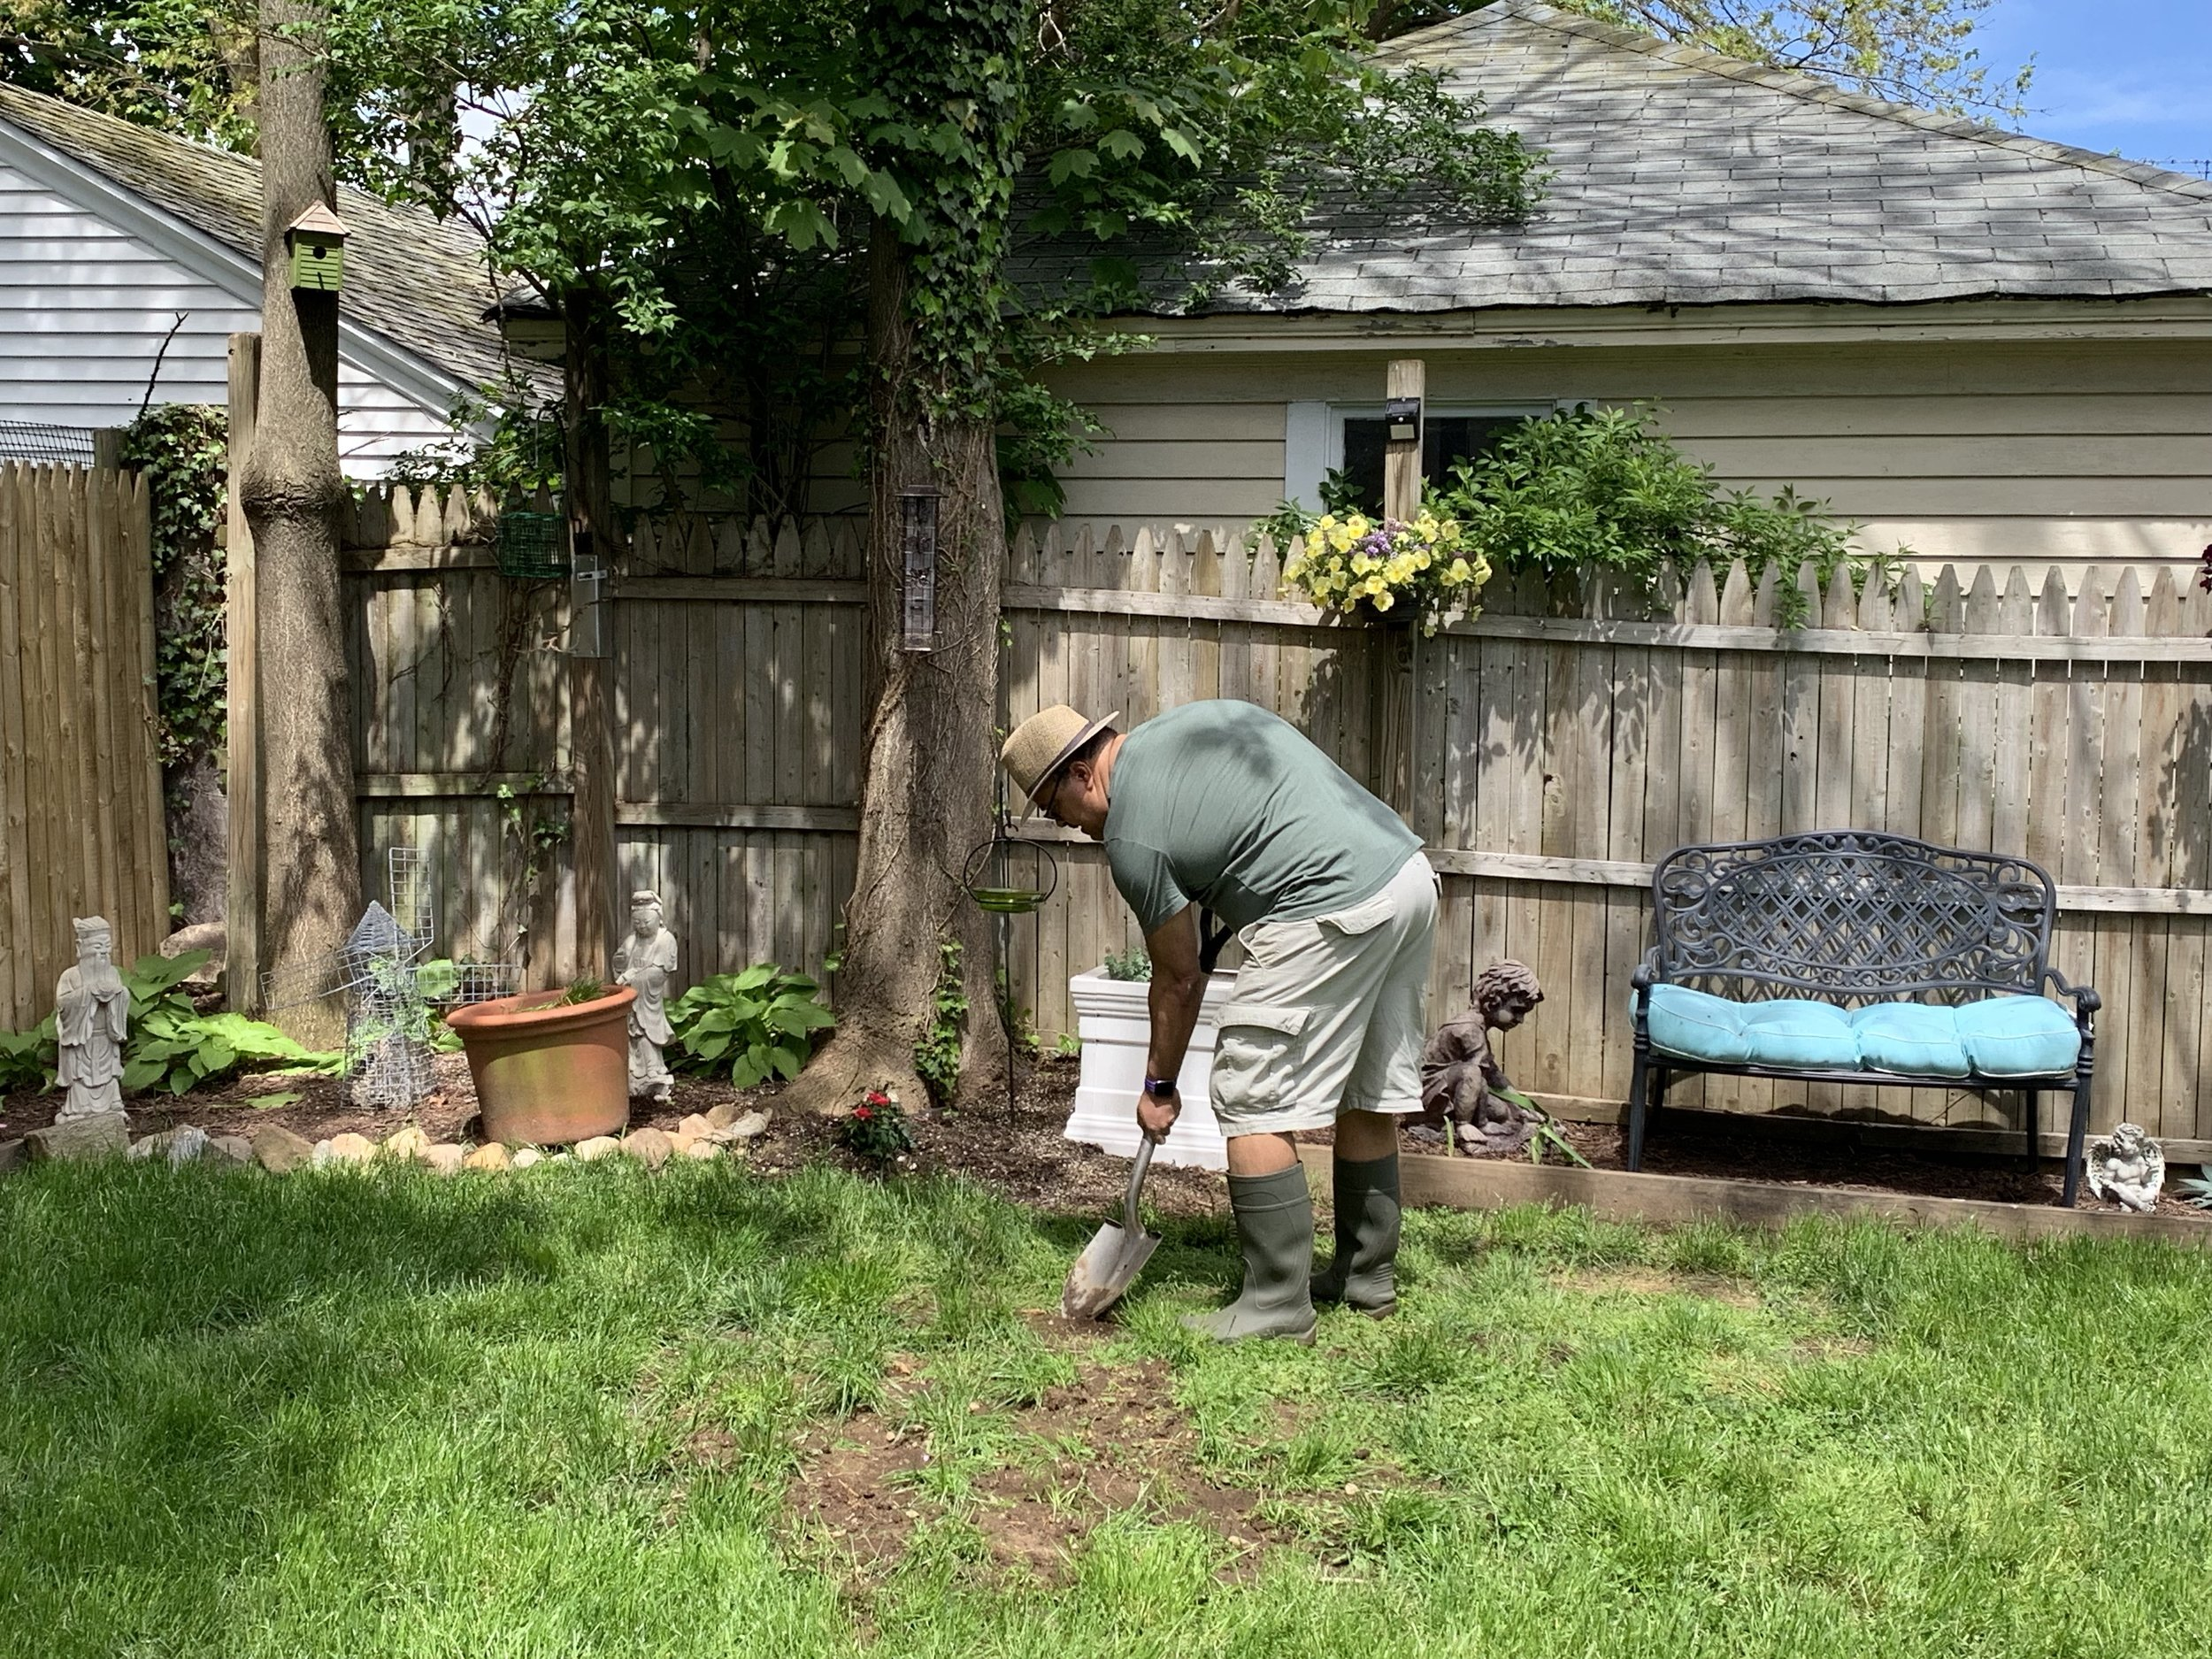 Bending the back while transplanting grass.